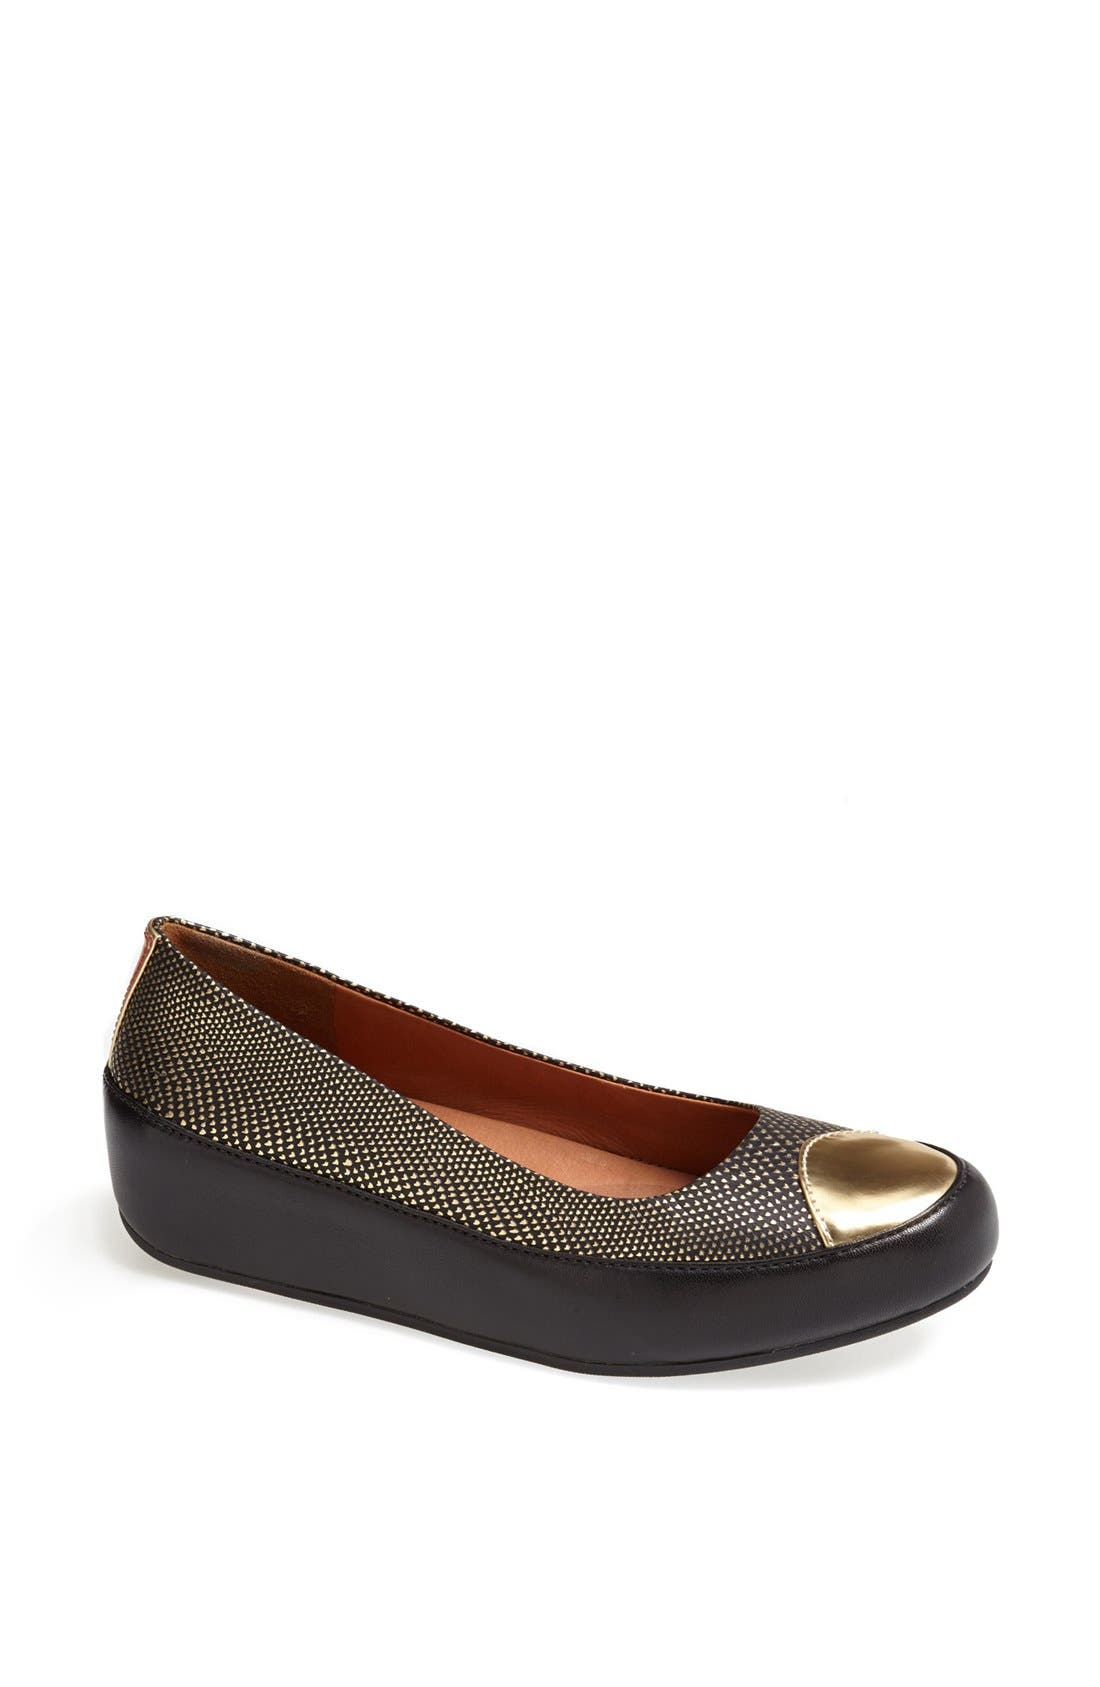 Alternate Image 1 Selected - FitFlop 'Dué™ Oro' Leather Flat